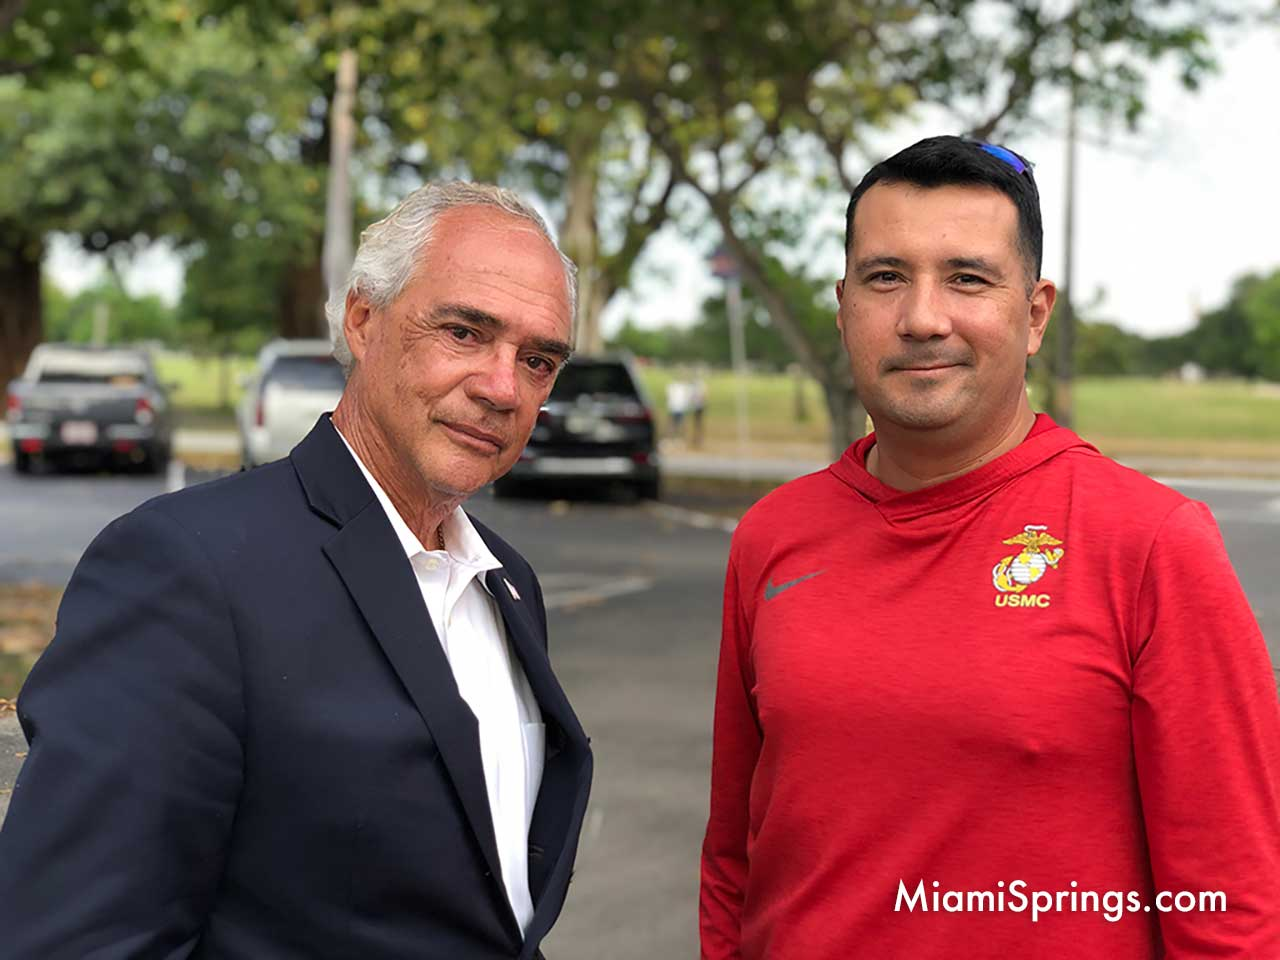 Vincent Medel with friend on election day.